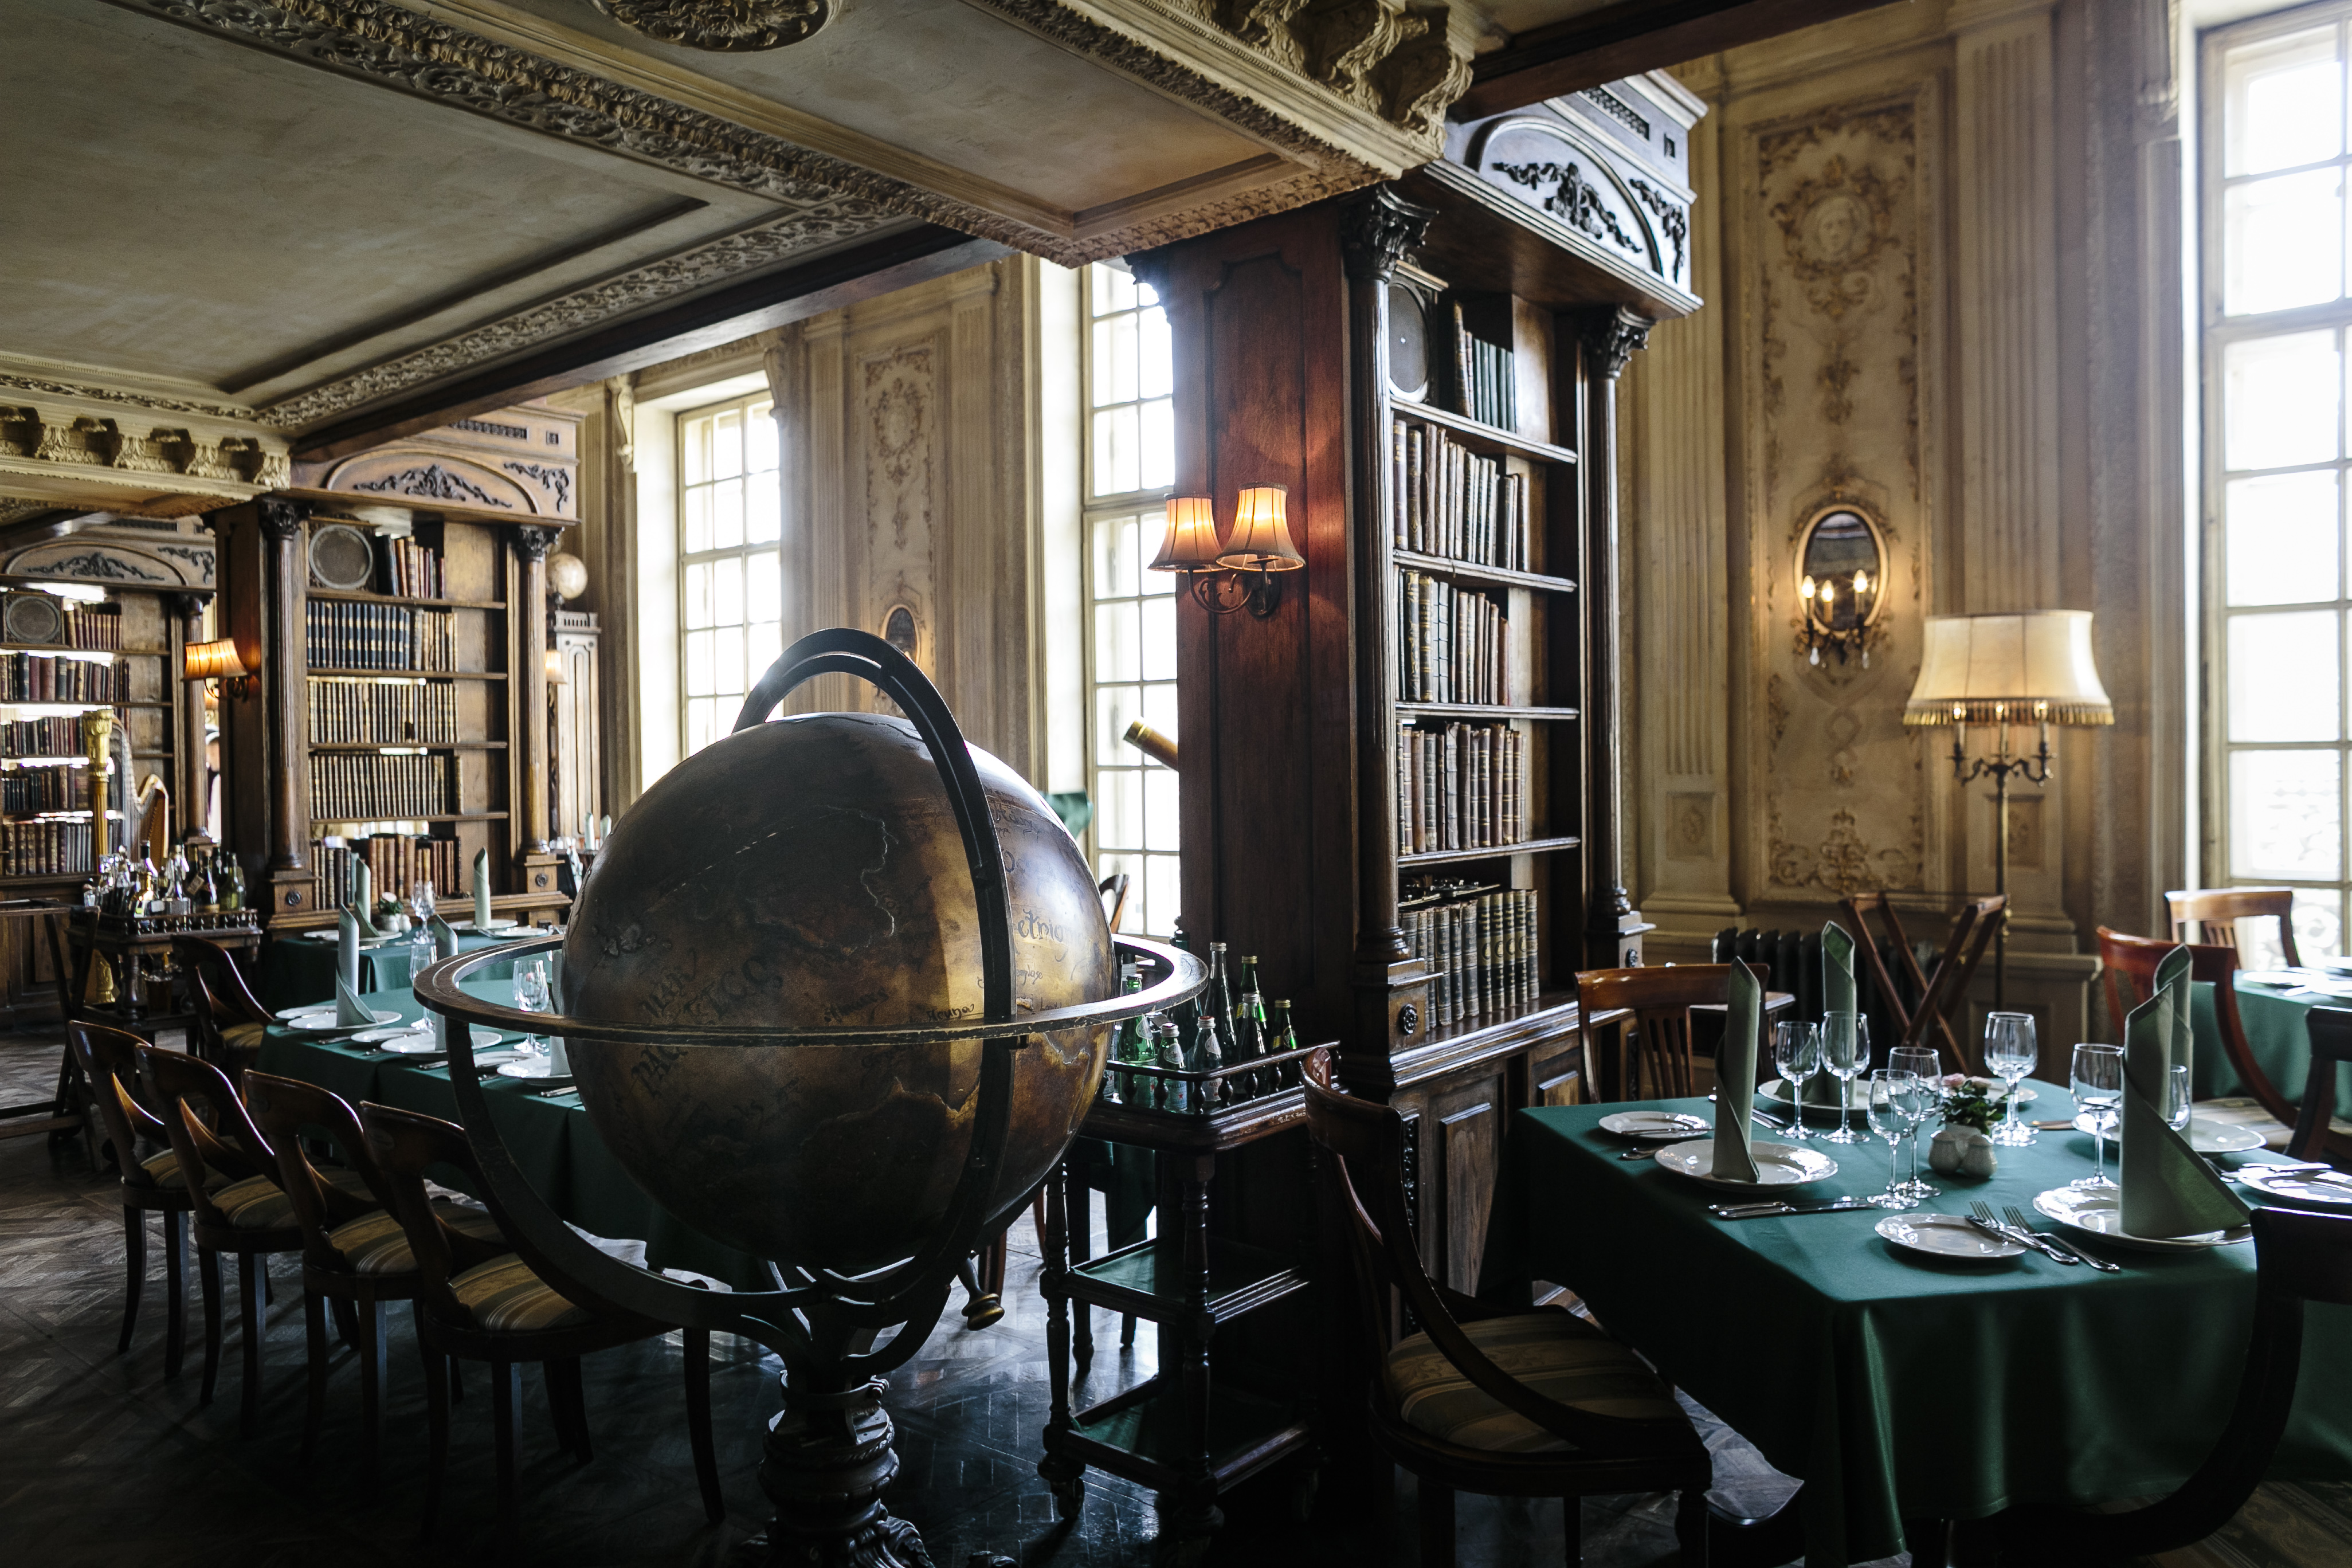 Located in the heart of the city in a Baroque mansion on Tverskoi Boulevard, Café Pushkin attracts both Russia's sophisticated beau monde and curious foreign tourists.